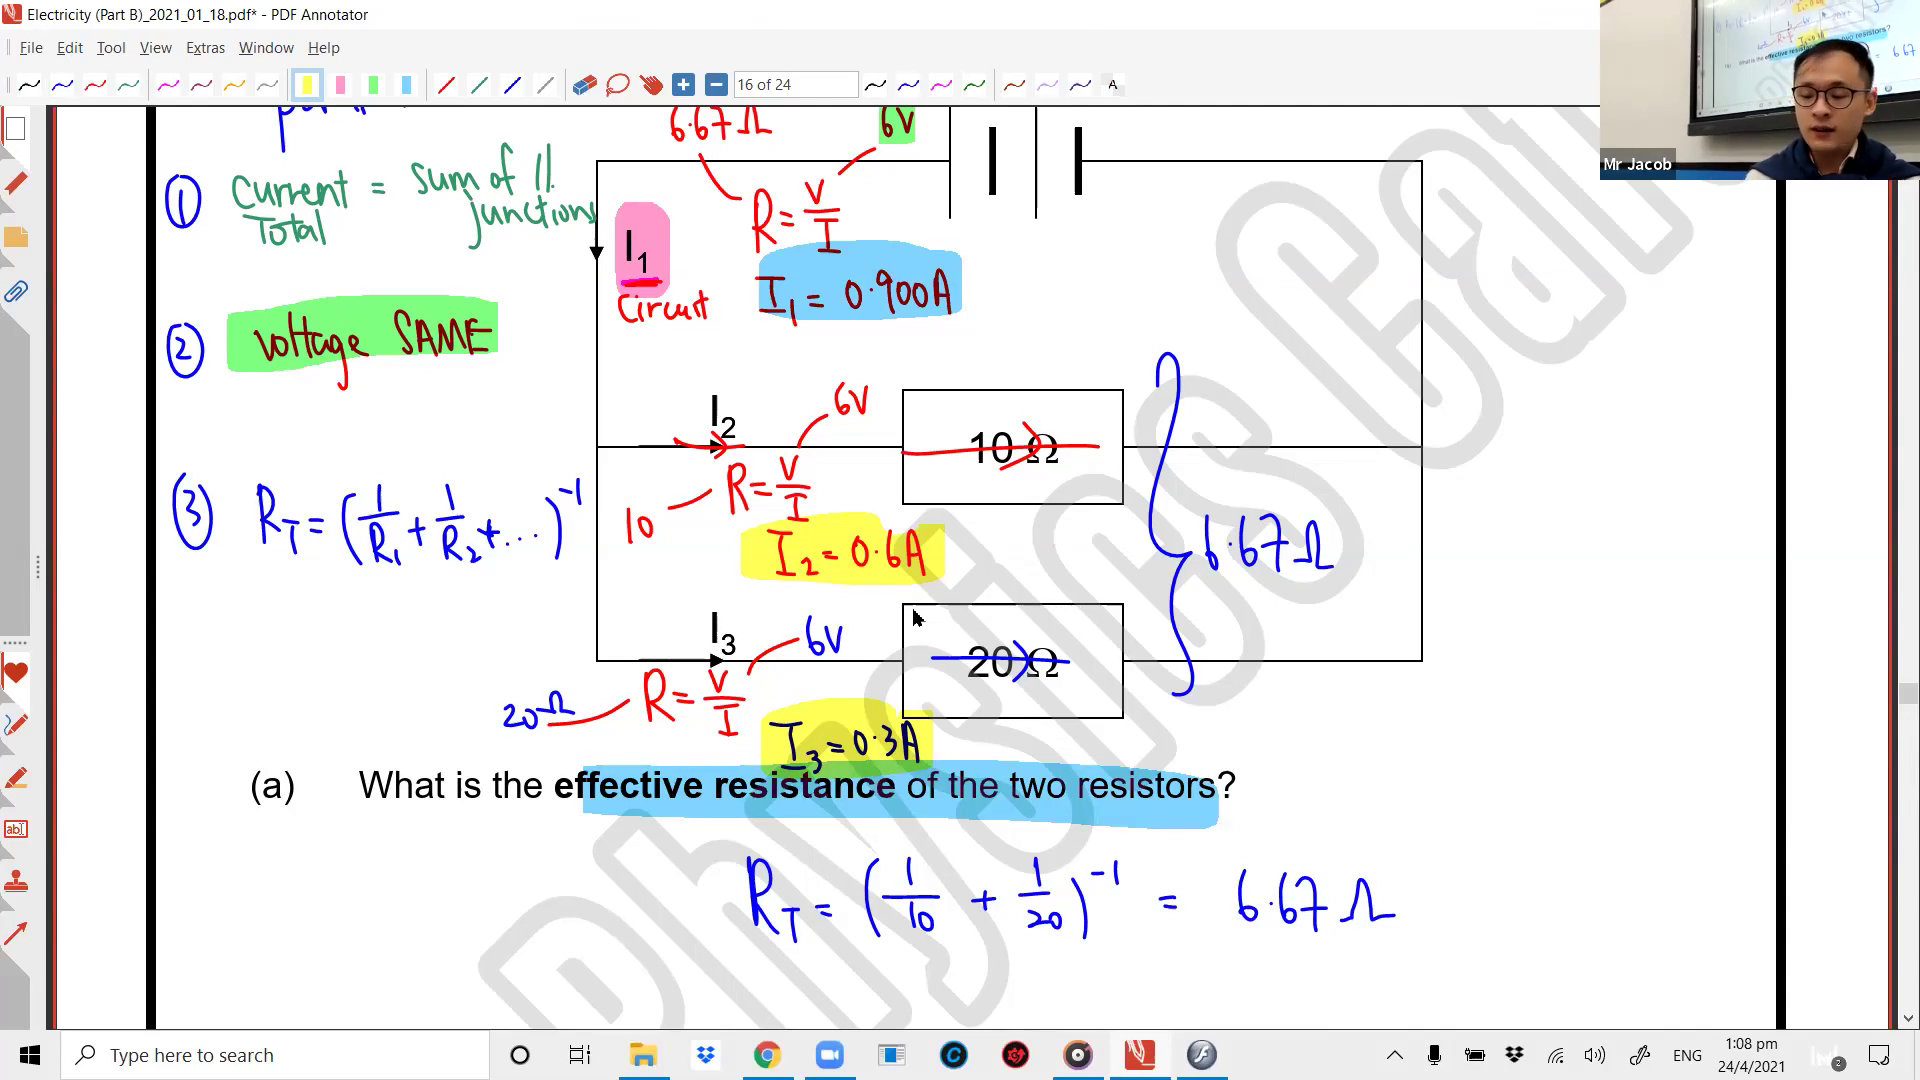 [ELECTRICITY] Series and Parallel Circuits